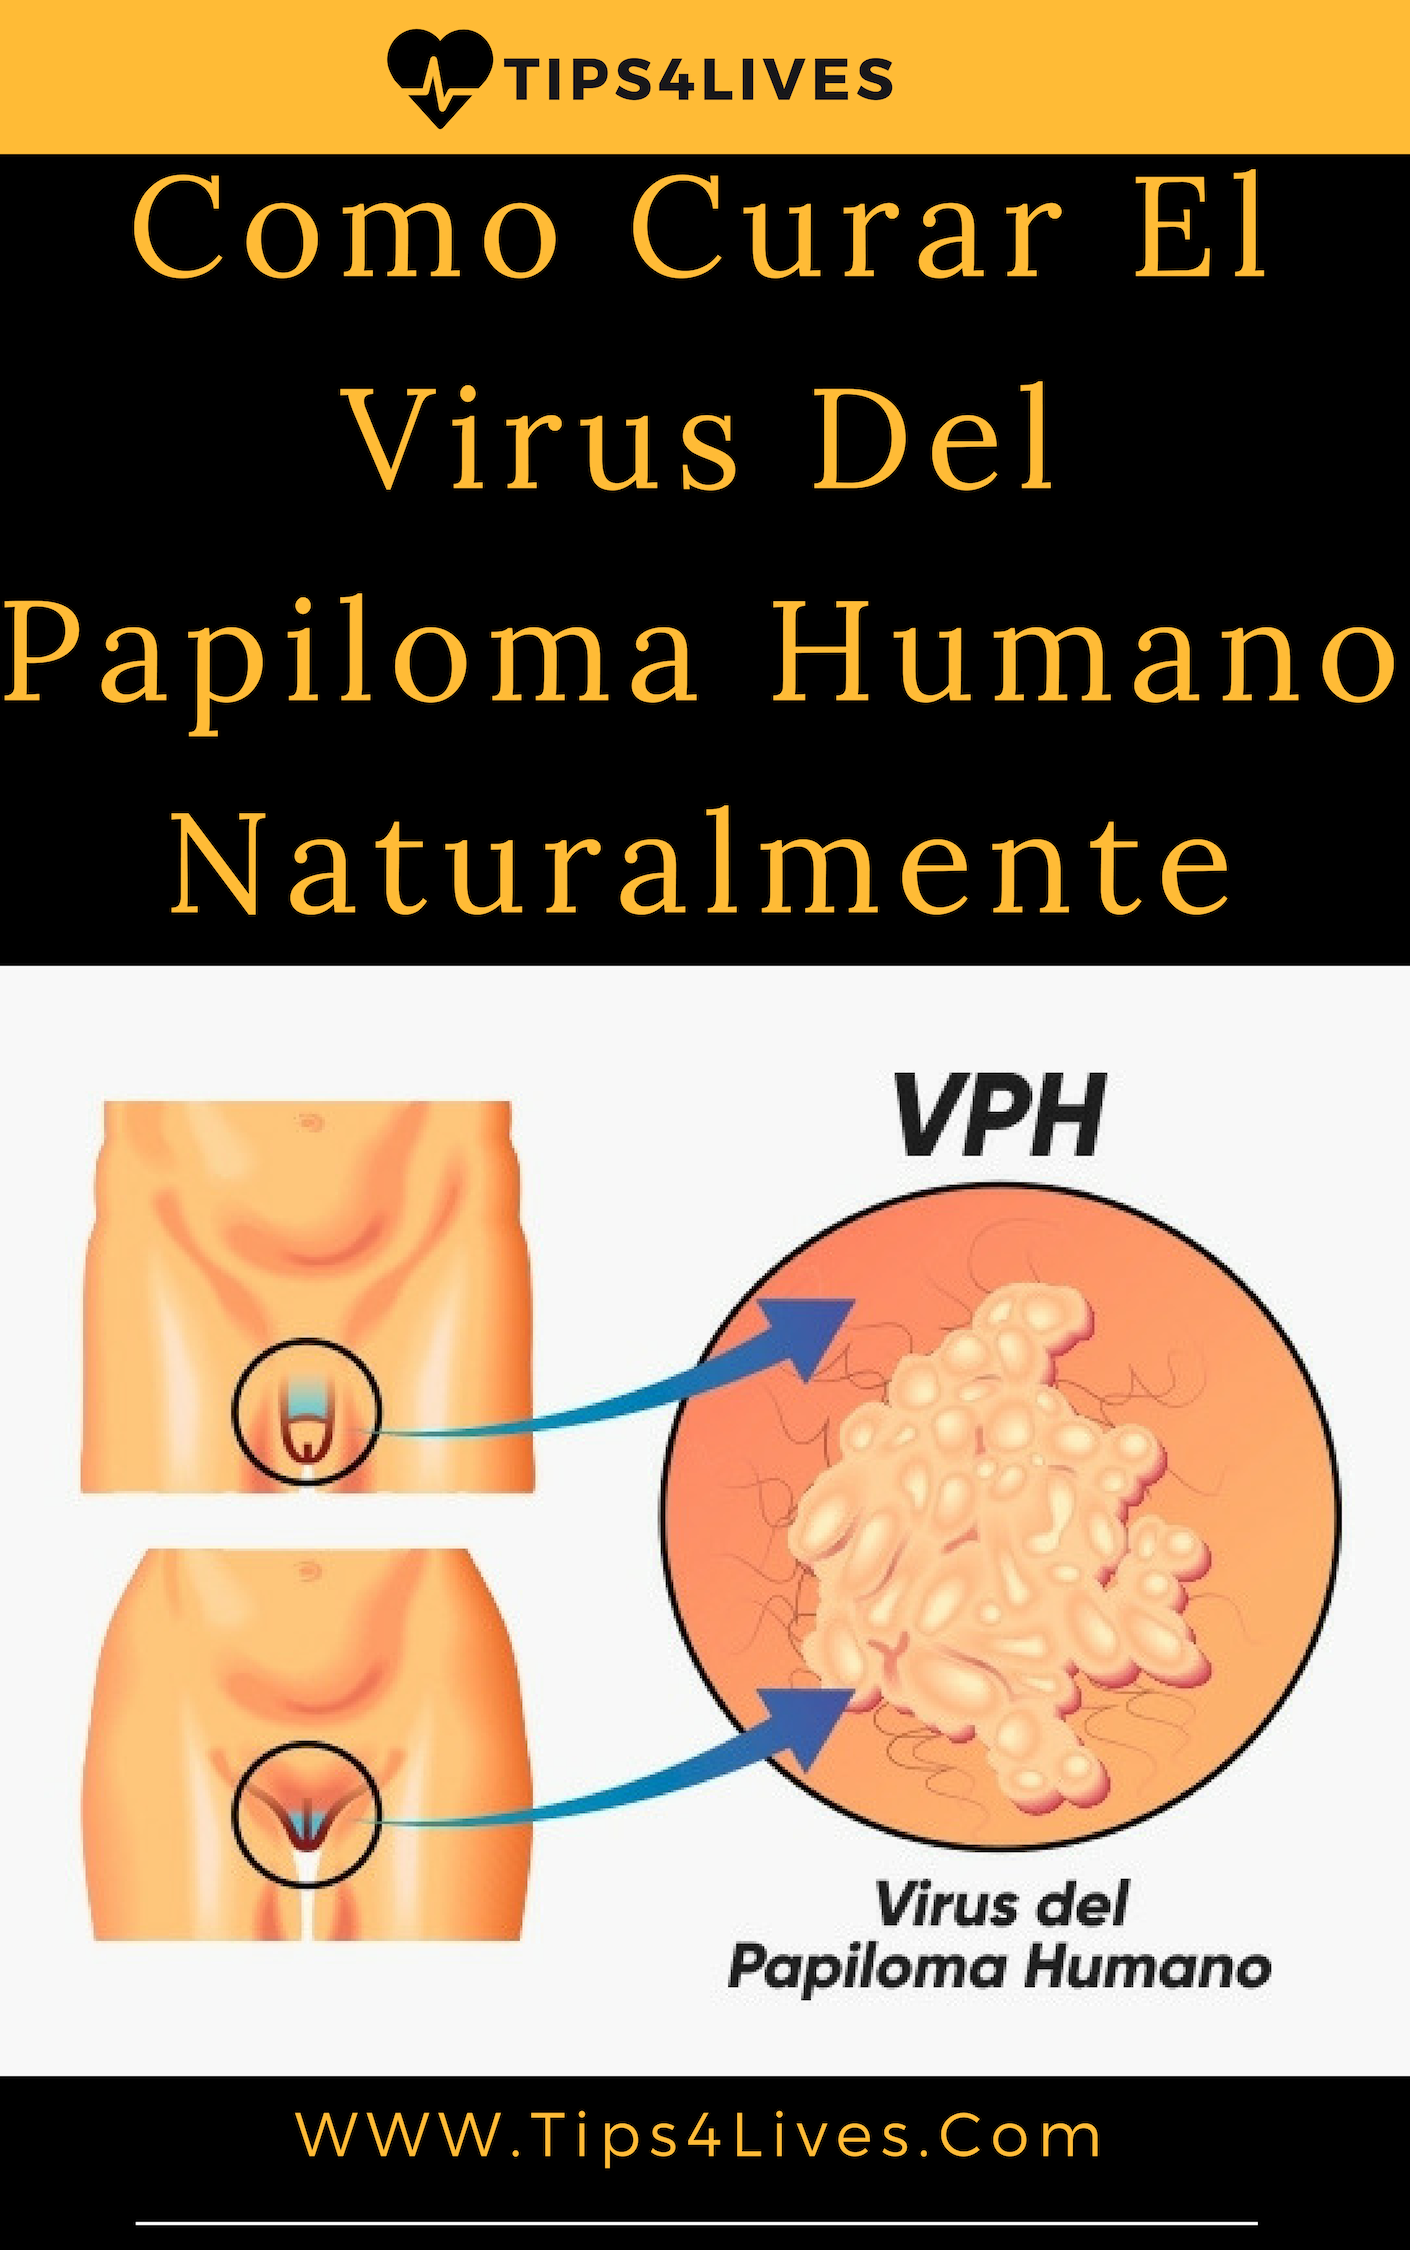 papiloma hpv cura cancer uretral tratamiento